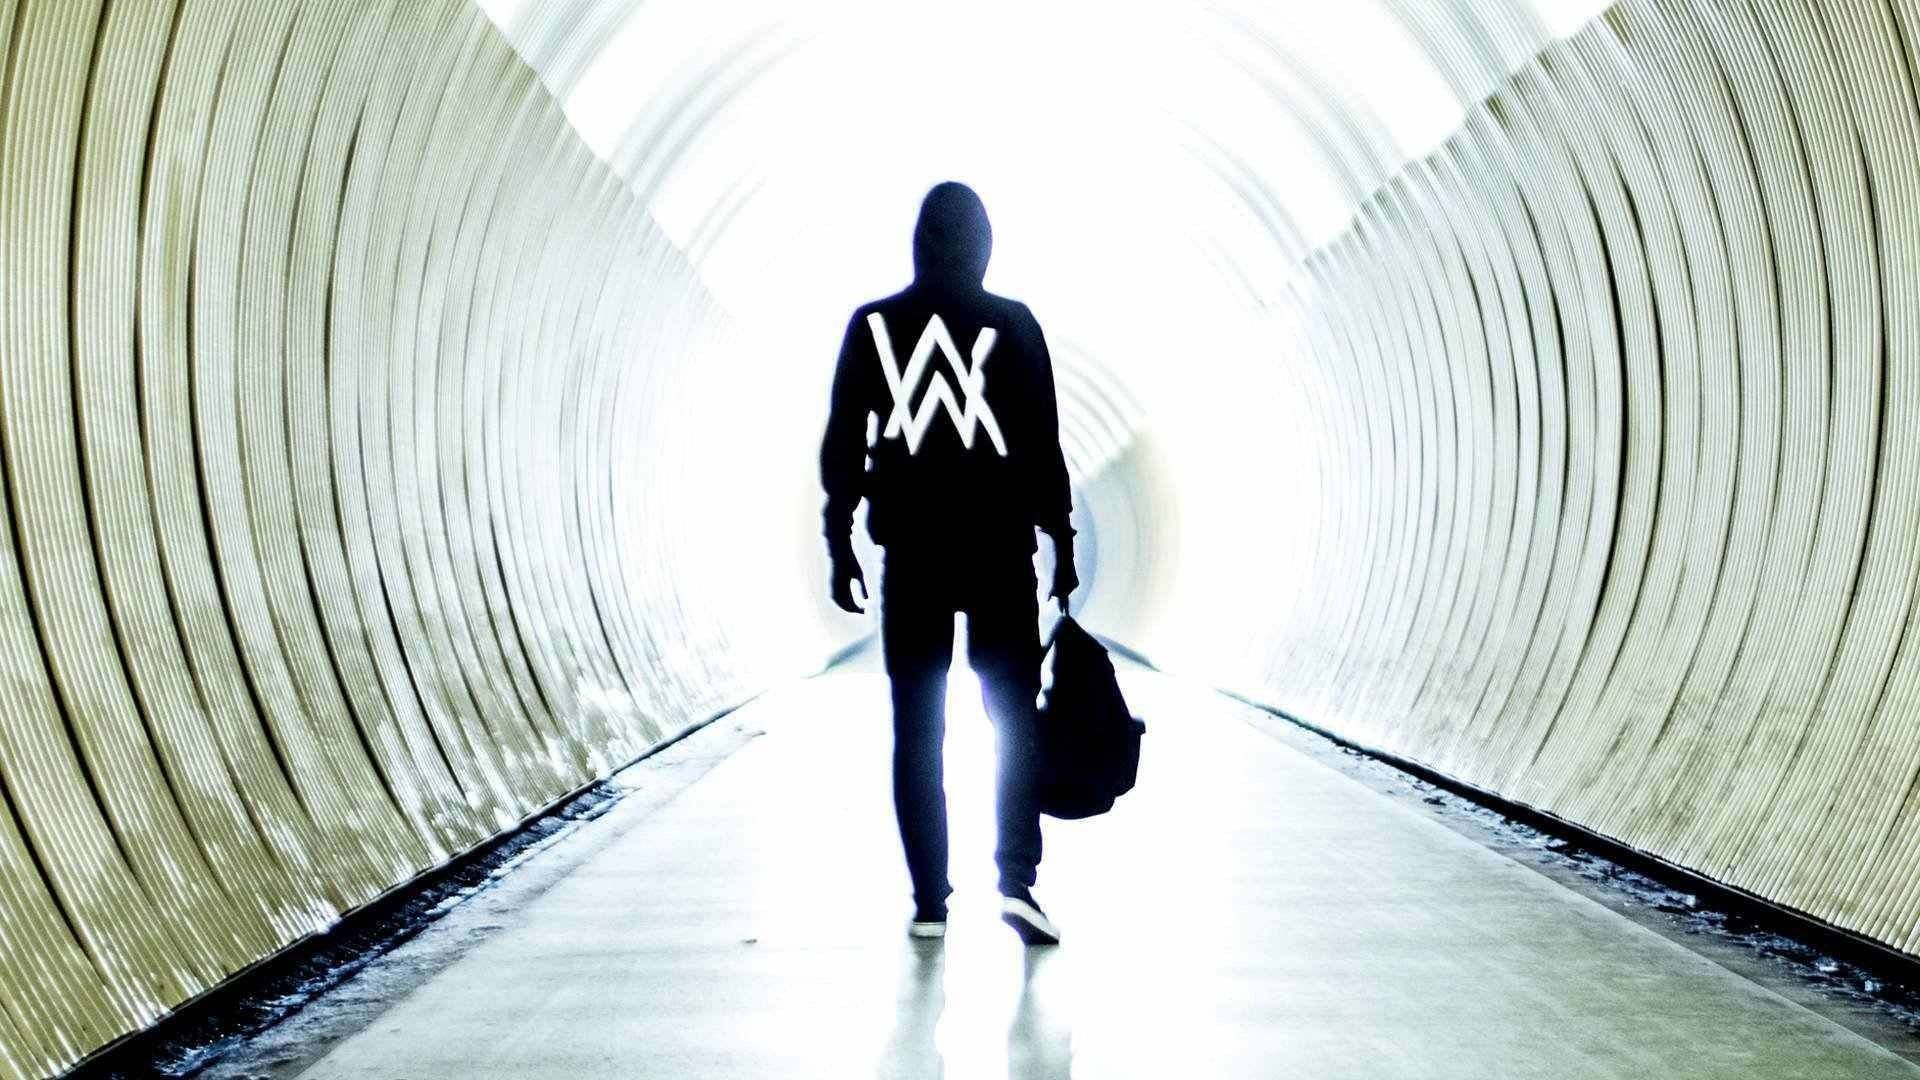 alan walker pic 1080p windows 369 kb o oshenka